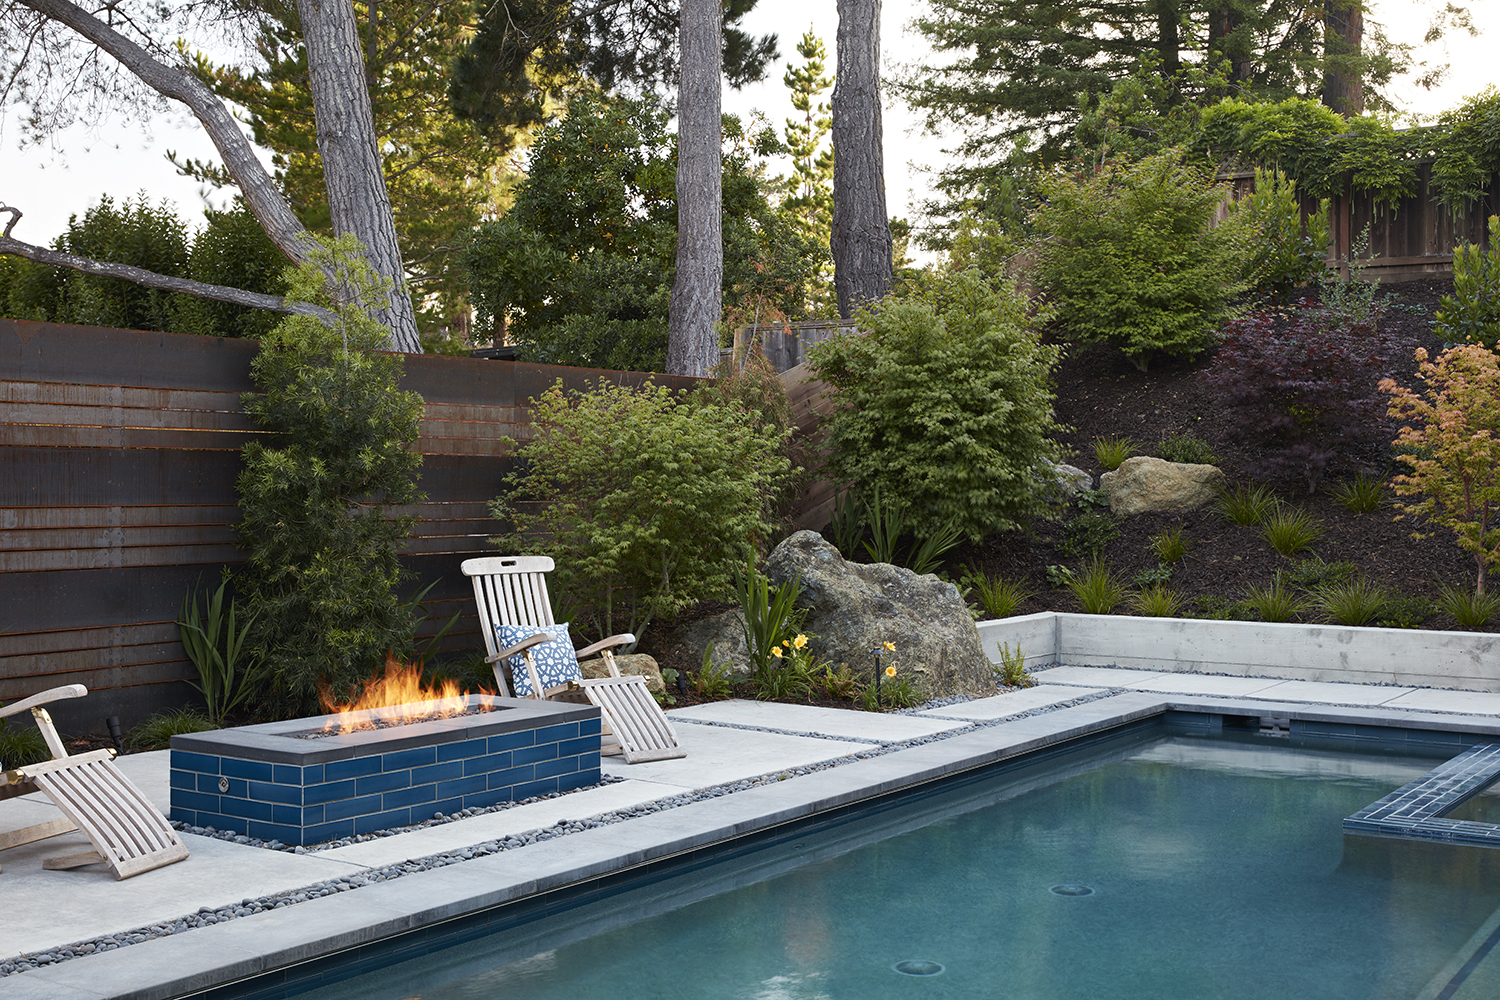 A metal fence sits behind the blue tiled firepit for fire safety.